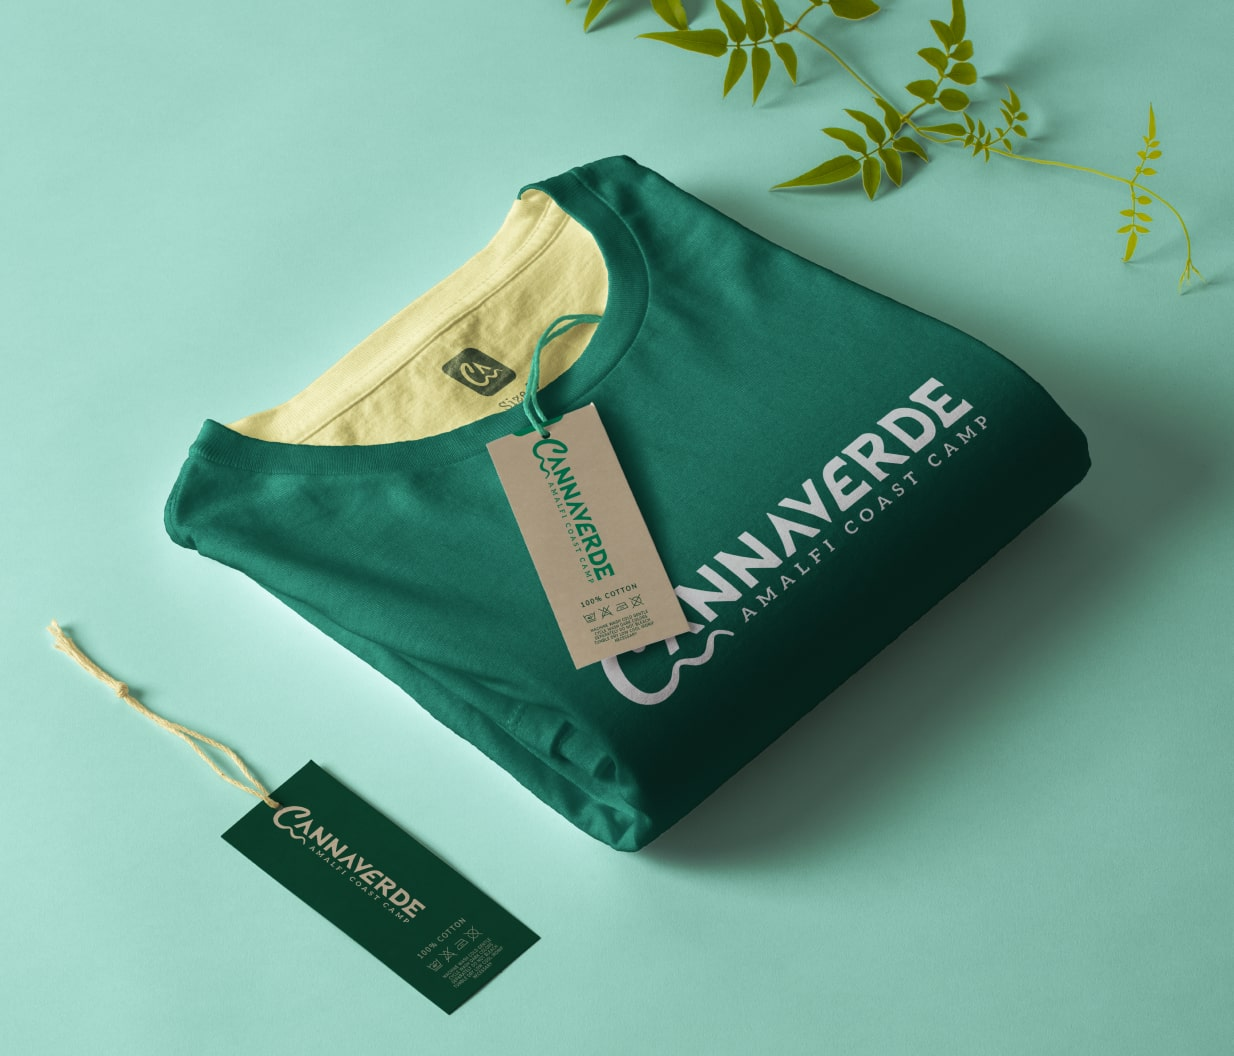 Customized green shirt with the logo of Cannaverde.